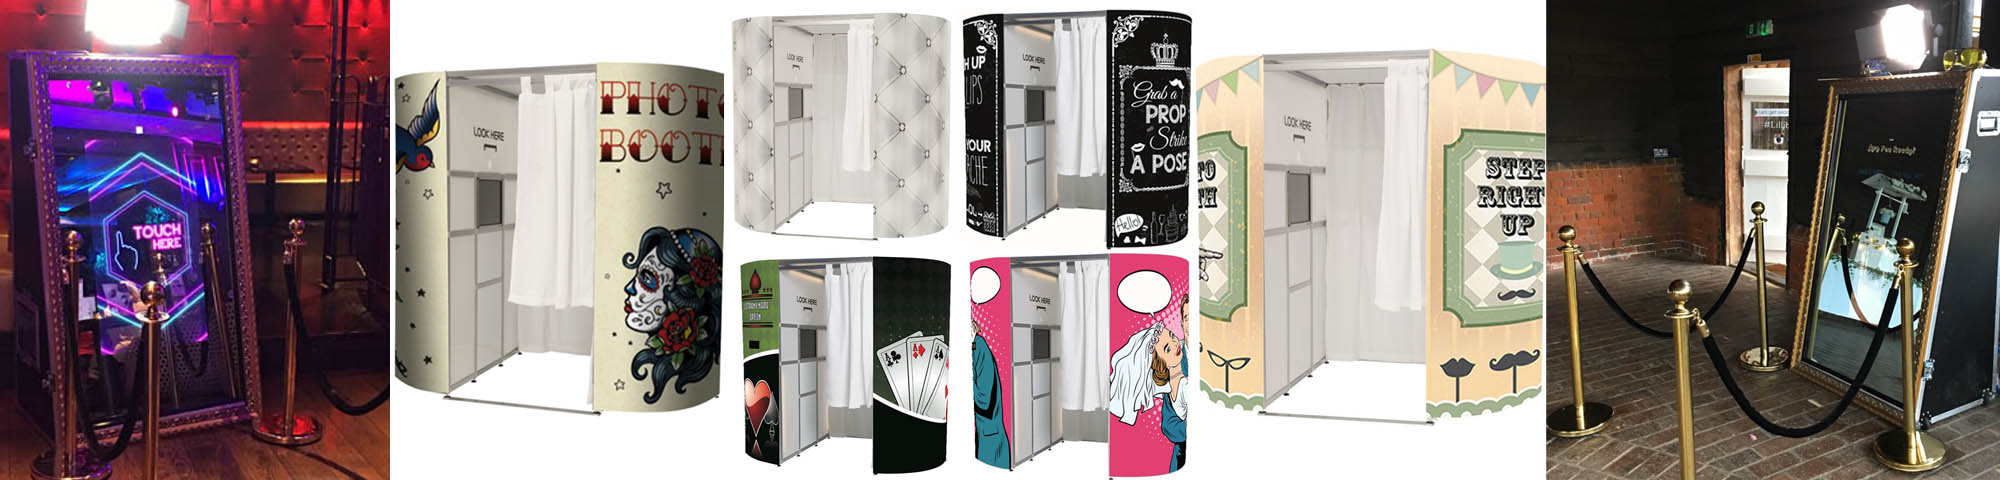 Photo booth rental in Bagshot - some of our great photo booths in venues